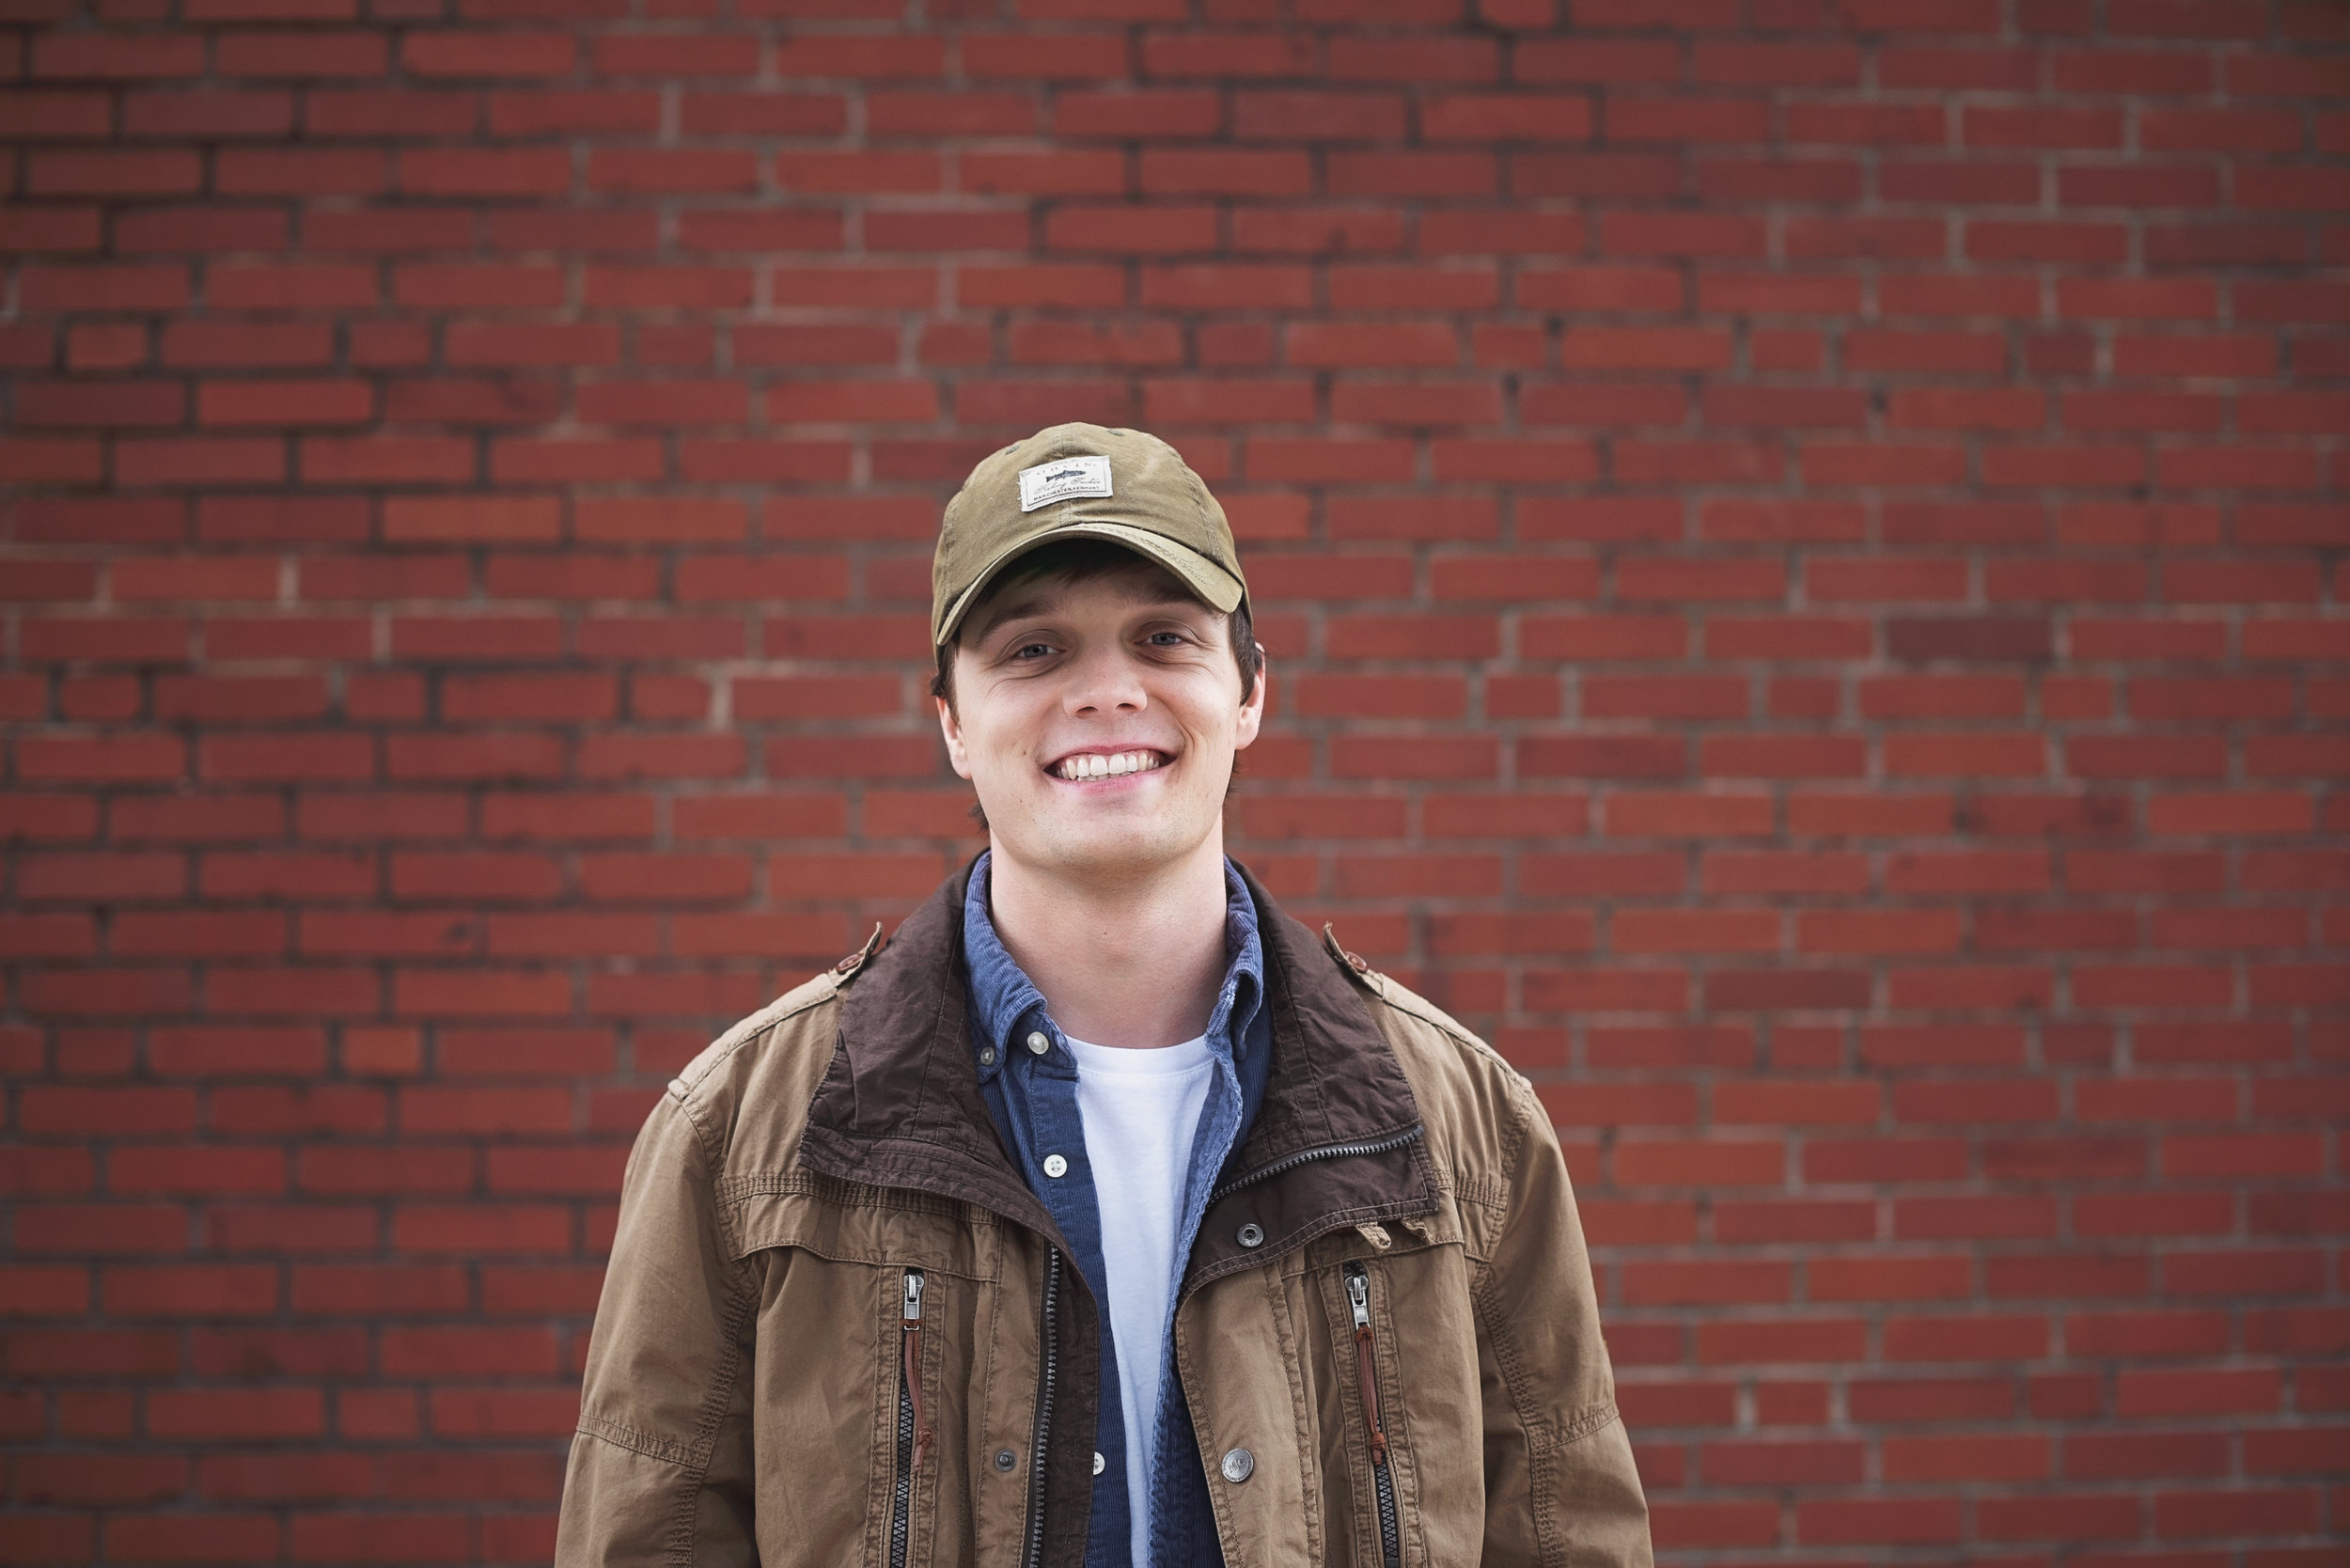 Meet Jacob Woods - Athens based American Country Singer